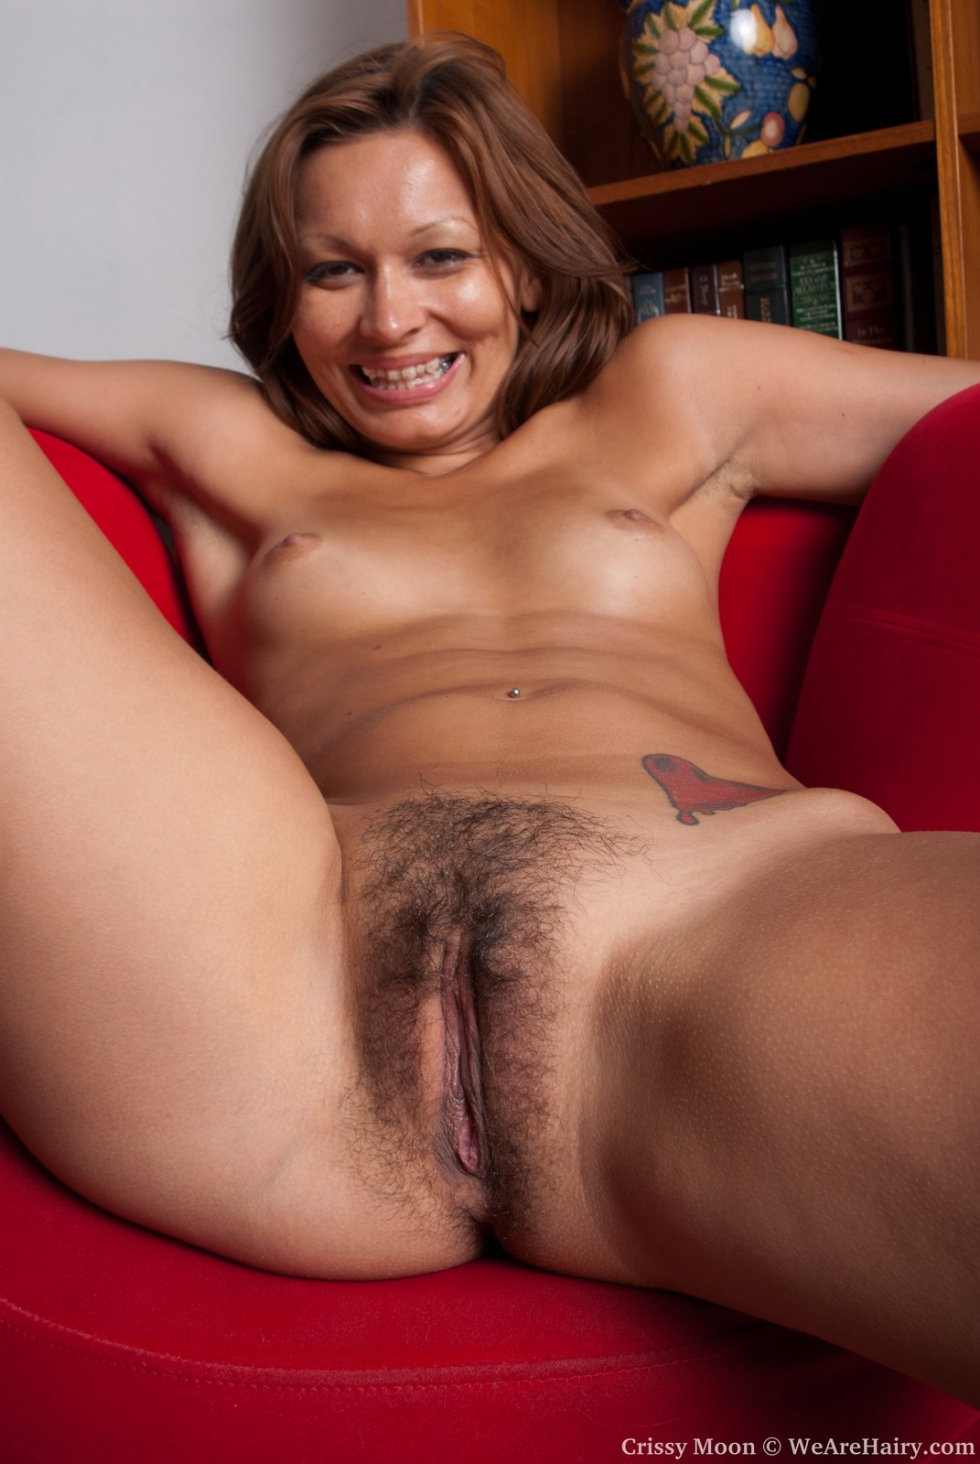 Good! moon crissy chick just